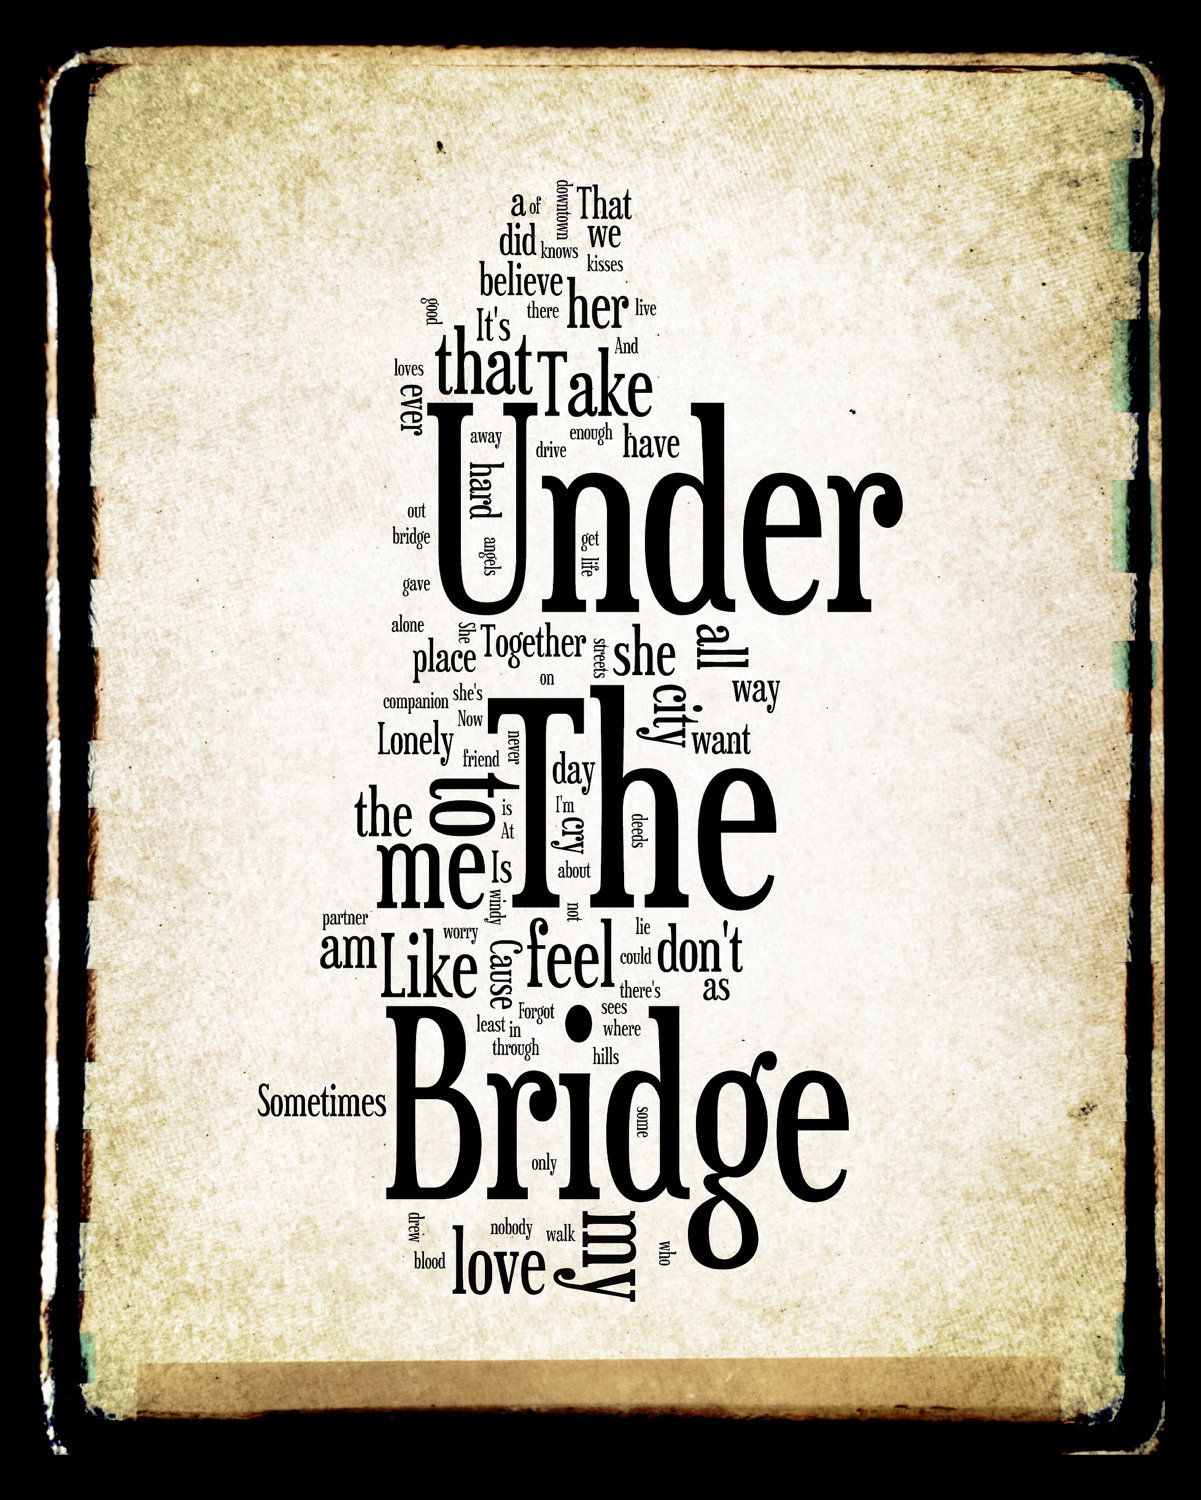 Under The Bridge by Red Hot Chili Peppers